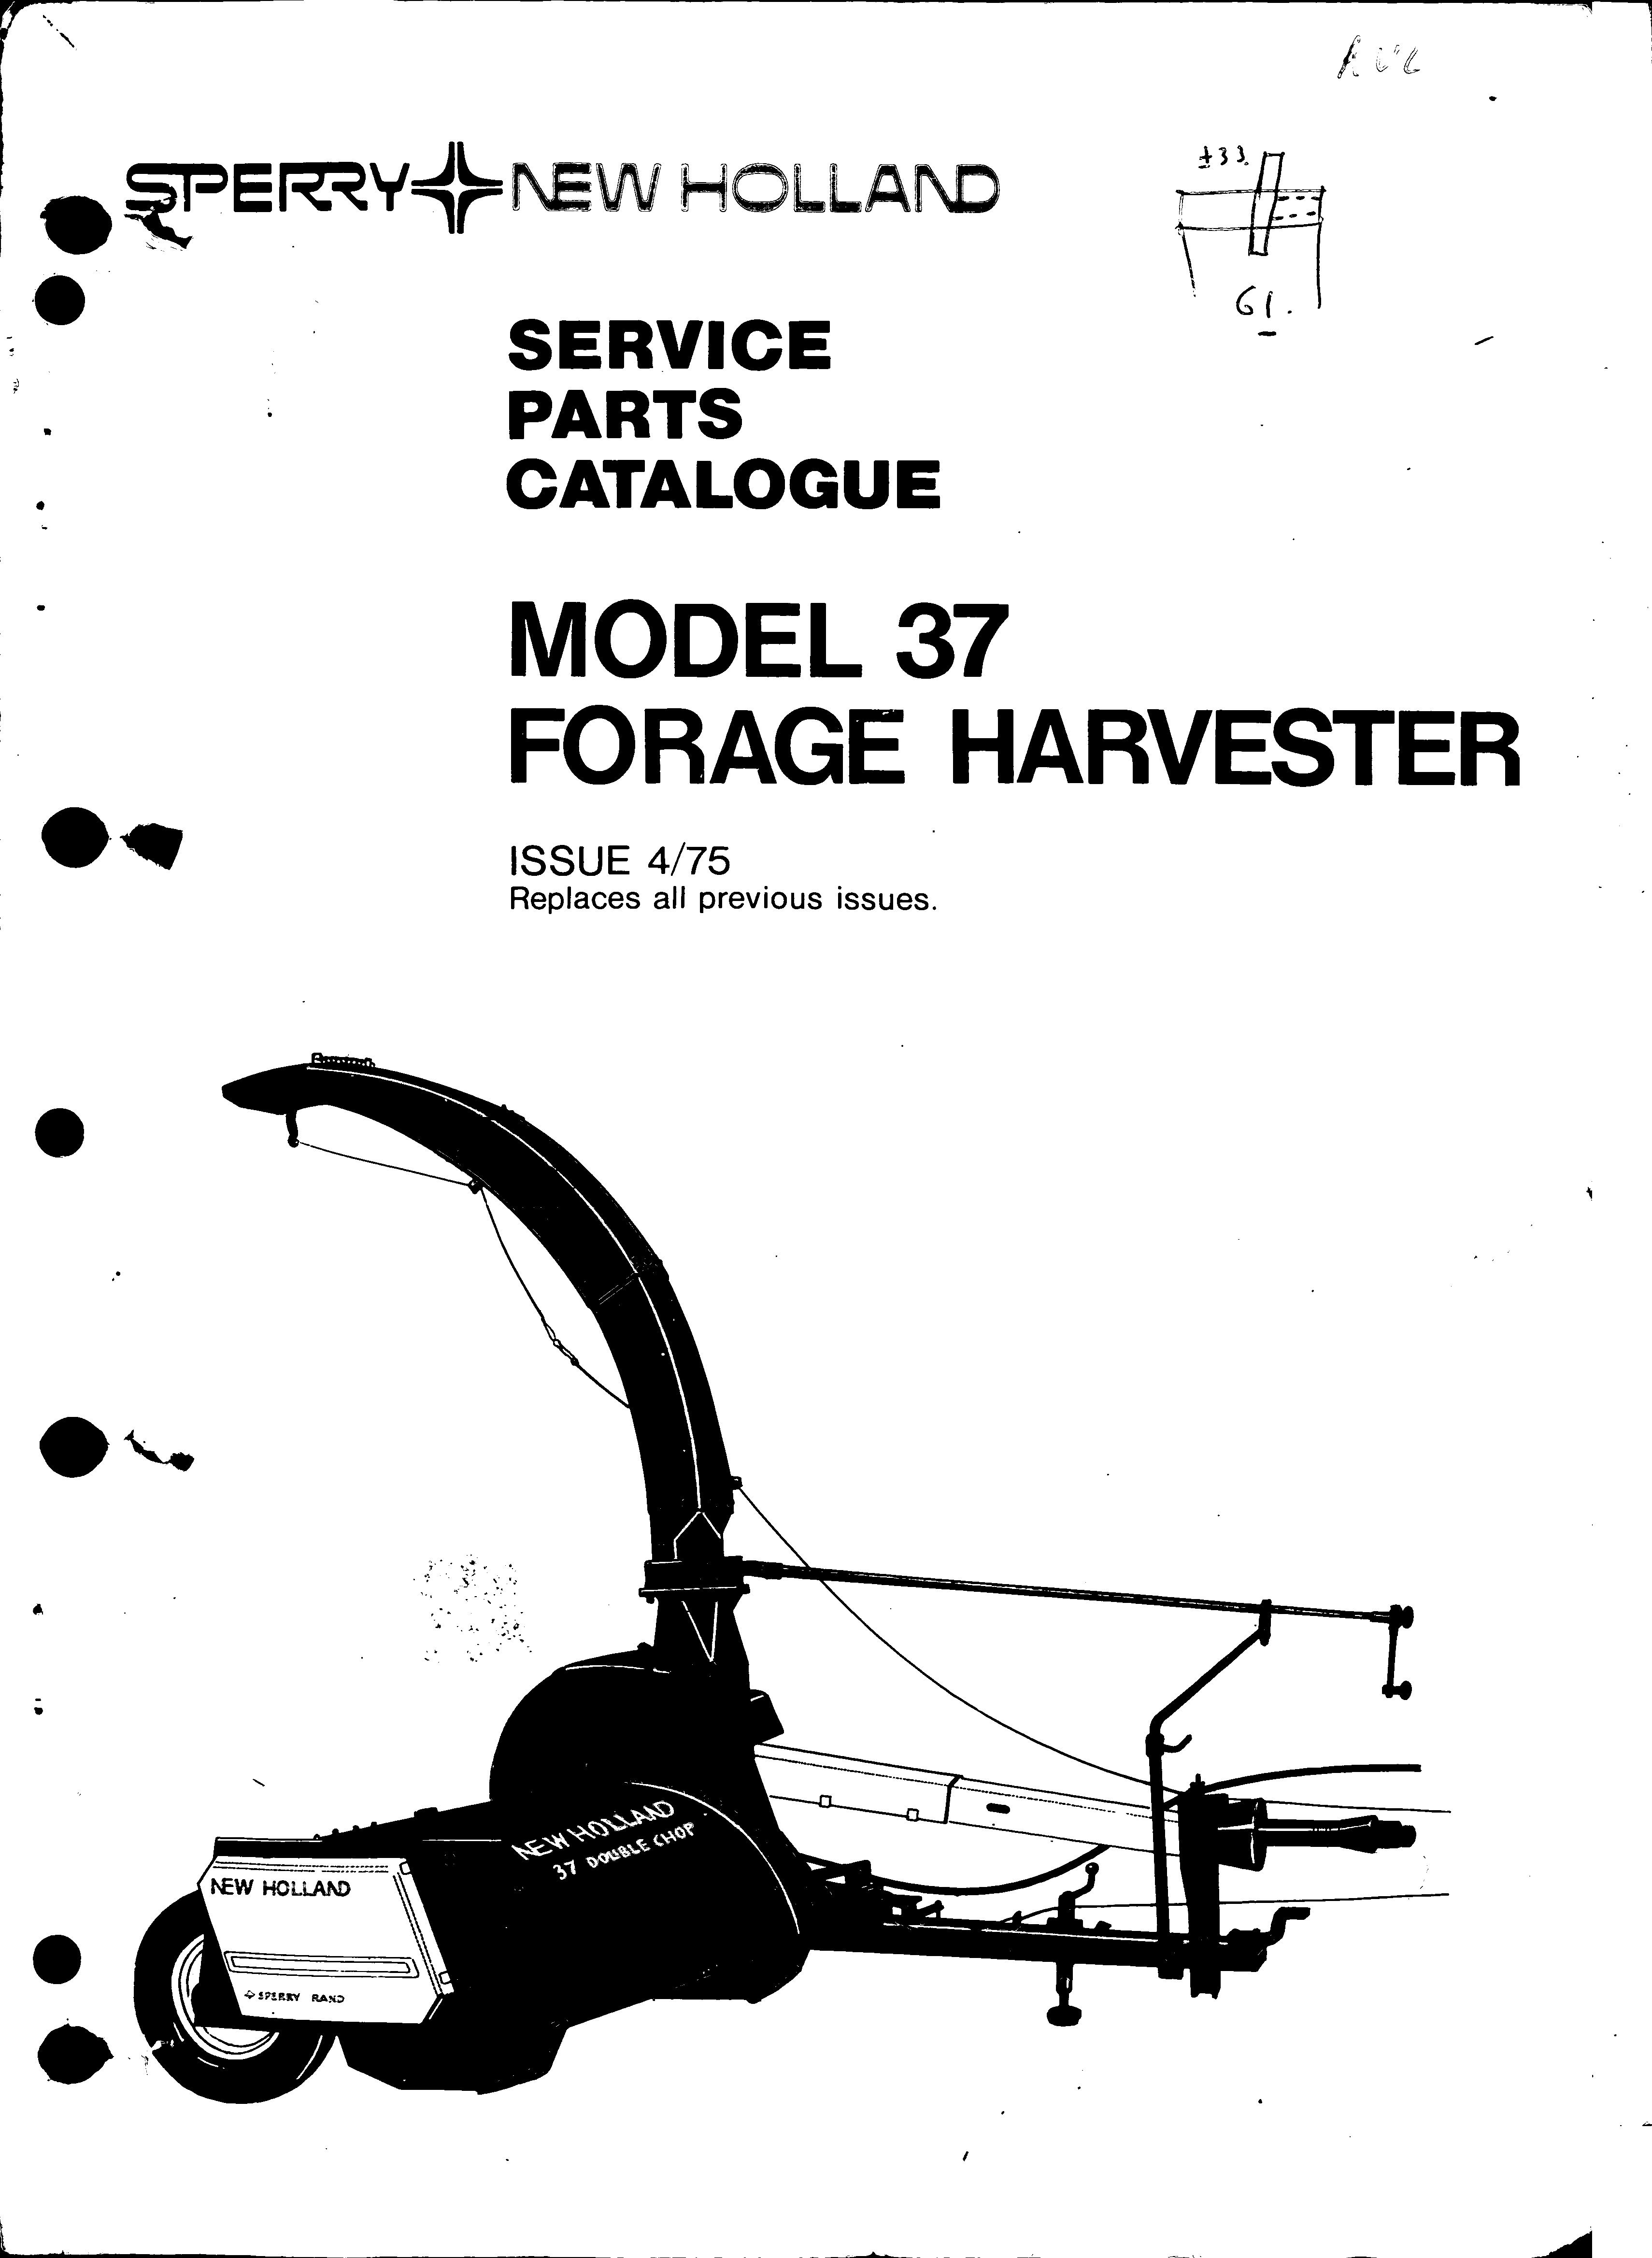 New Holland 37 Parts Manual for Forage Harvester download